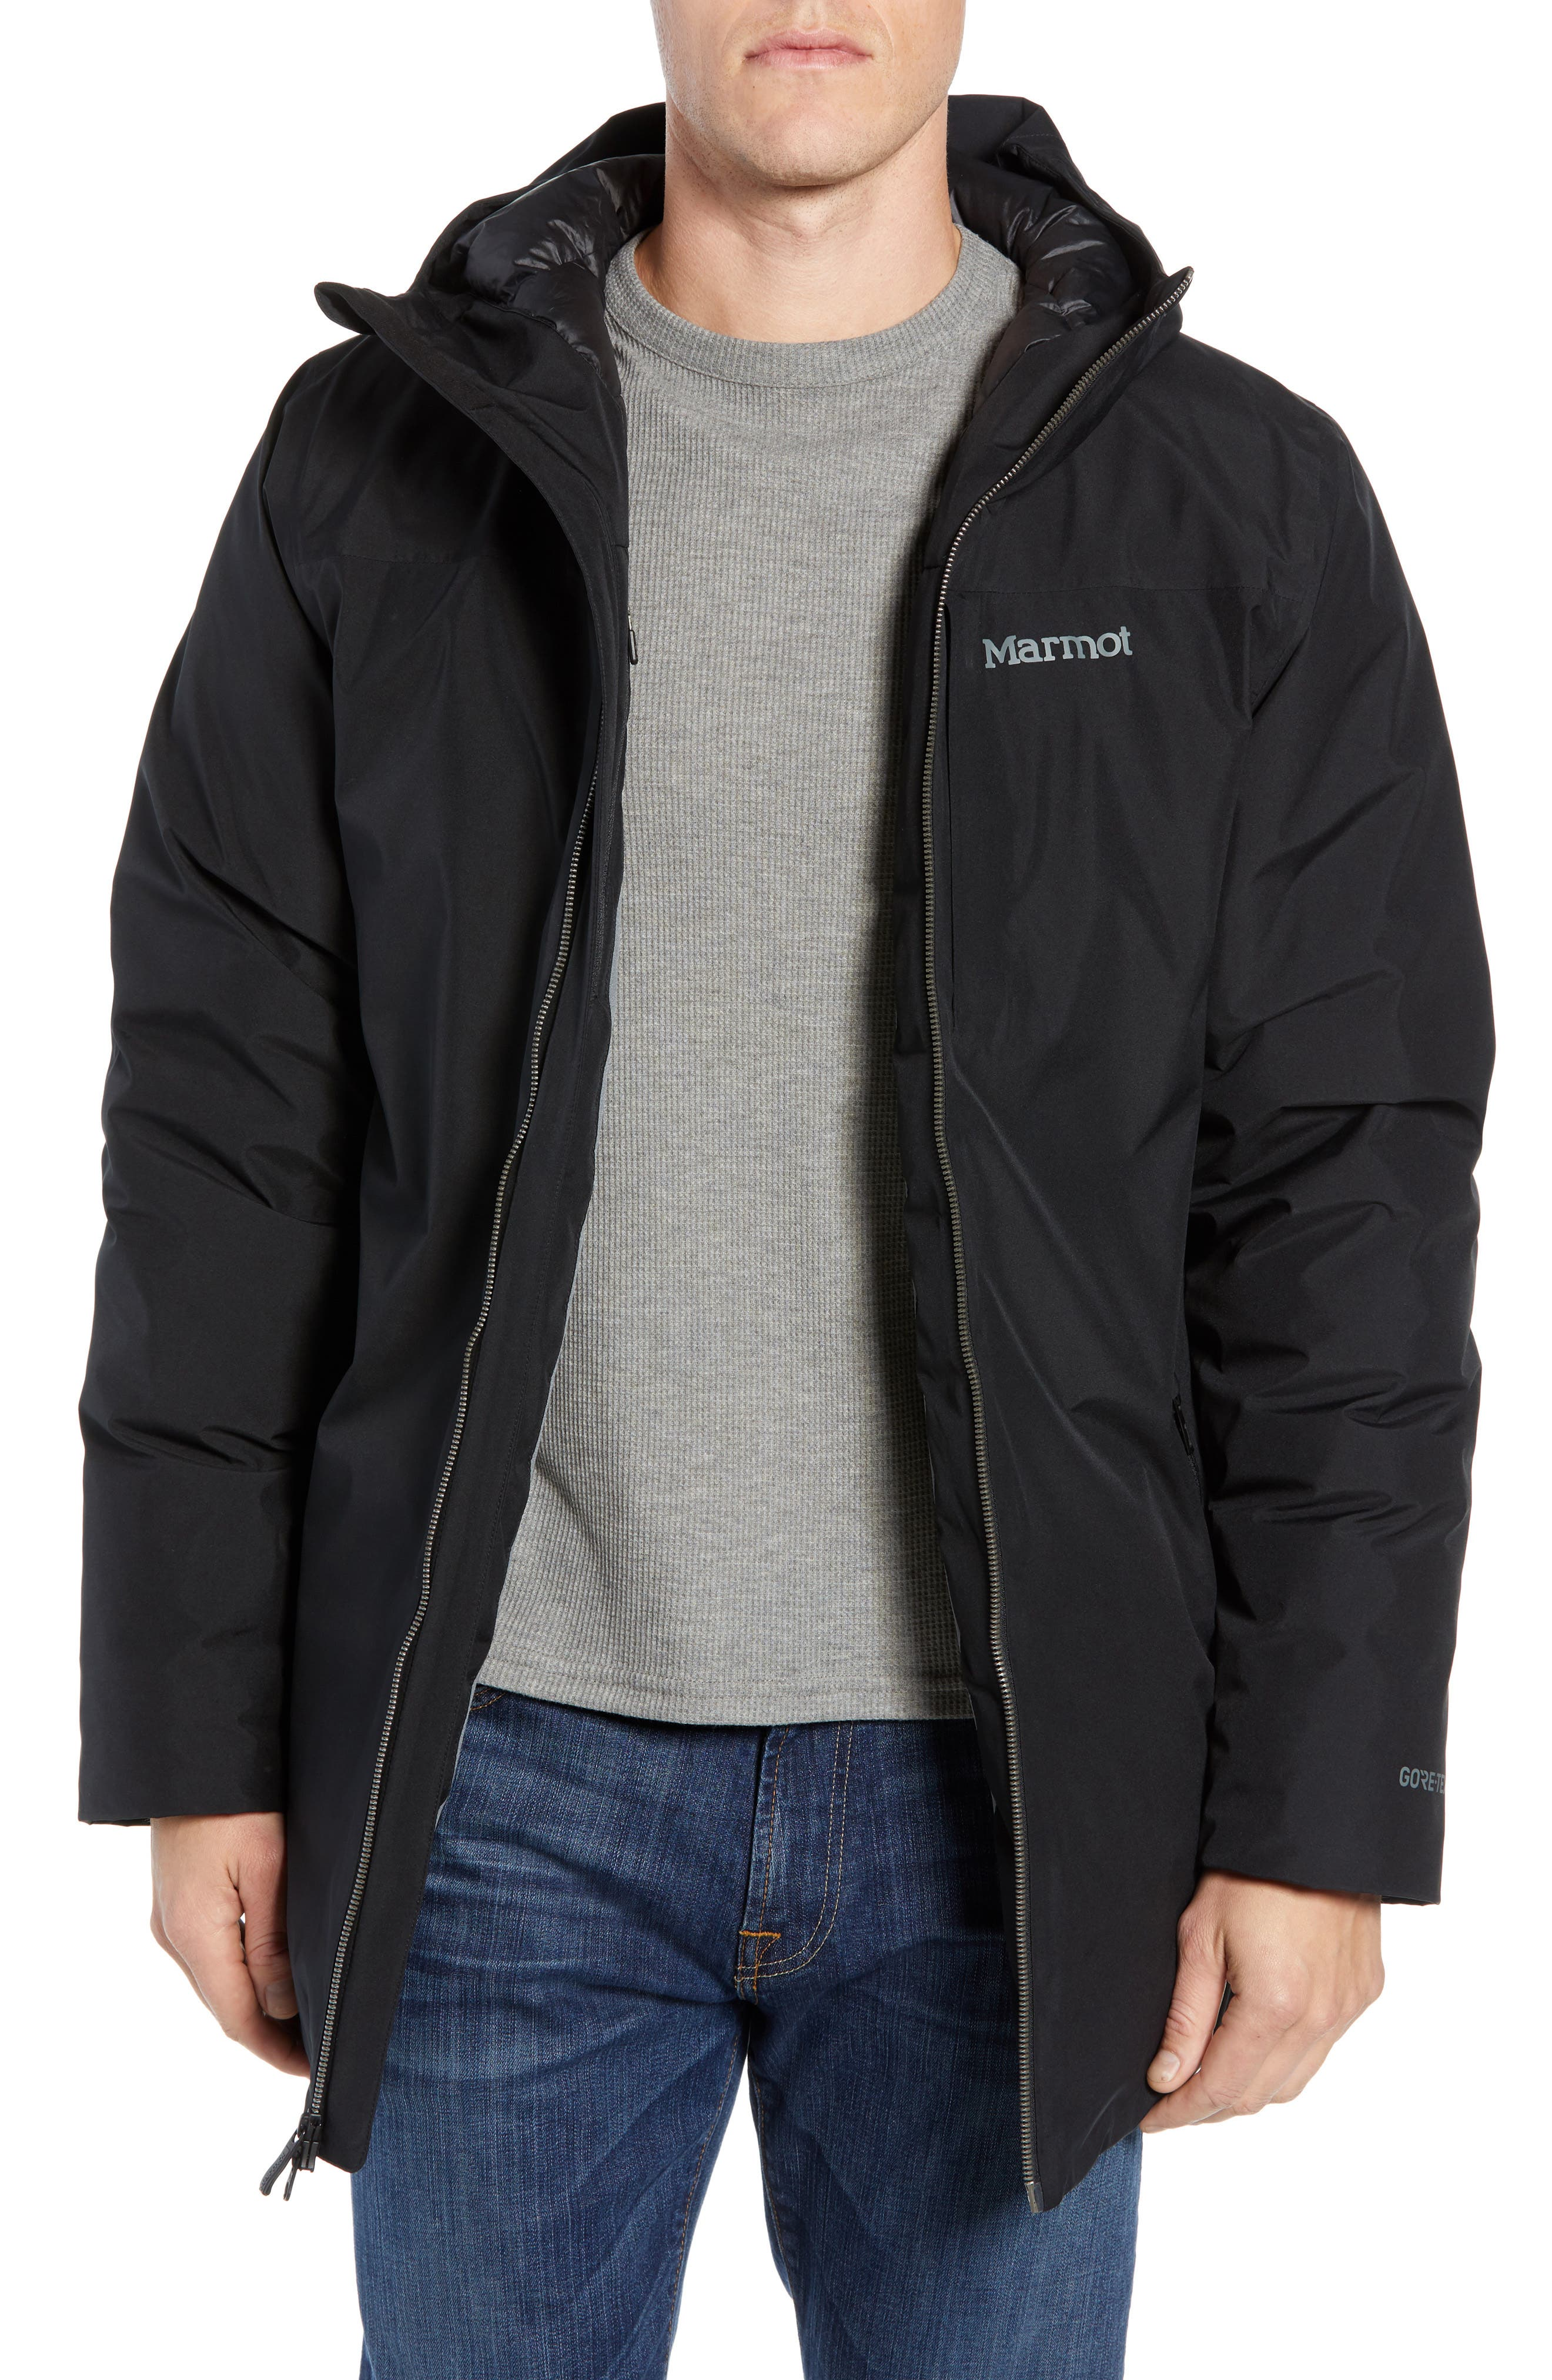 Marmot Oslo Gore-Tex 700 Fill Power Recycled Down Jacket, Black